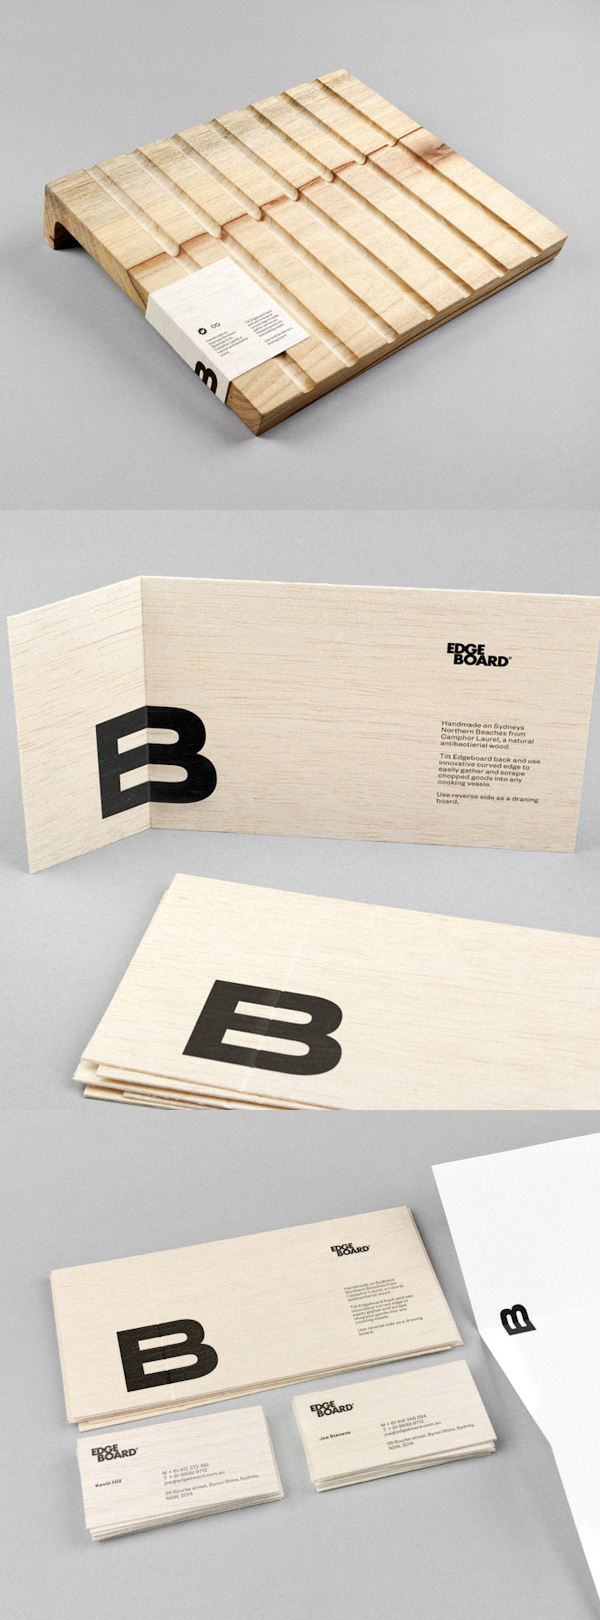 EdgeBoard's Minimalist Business Card & Branding